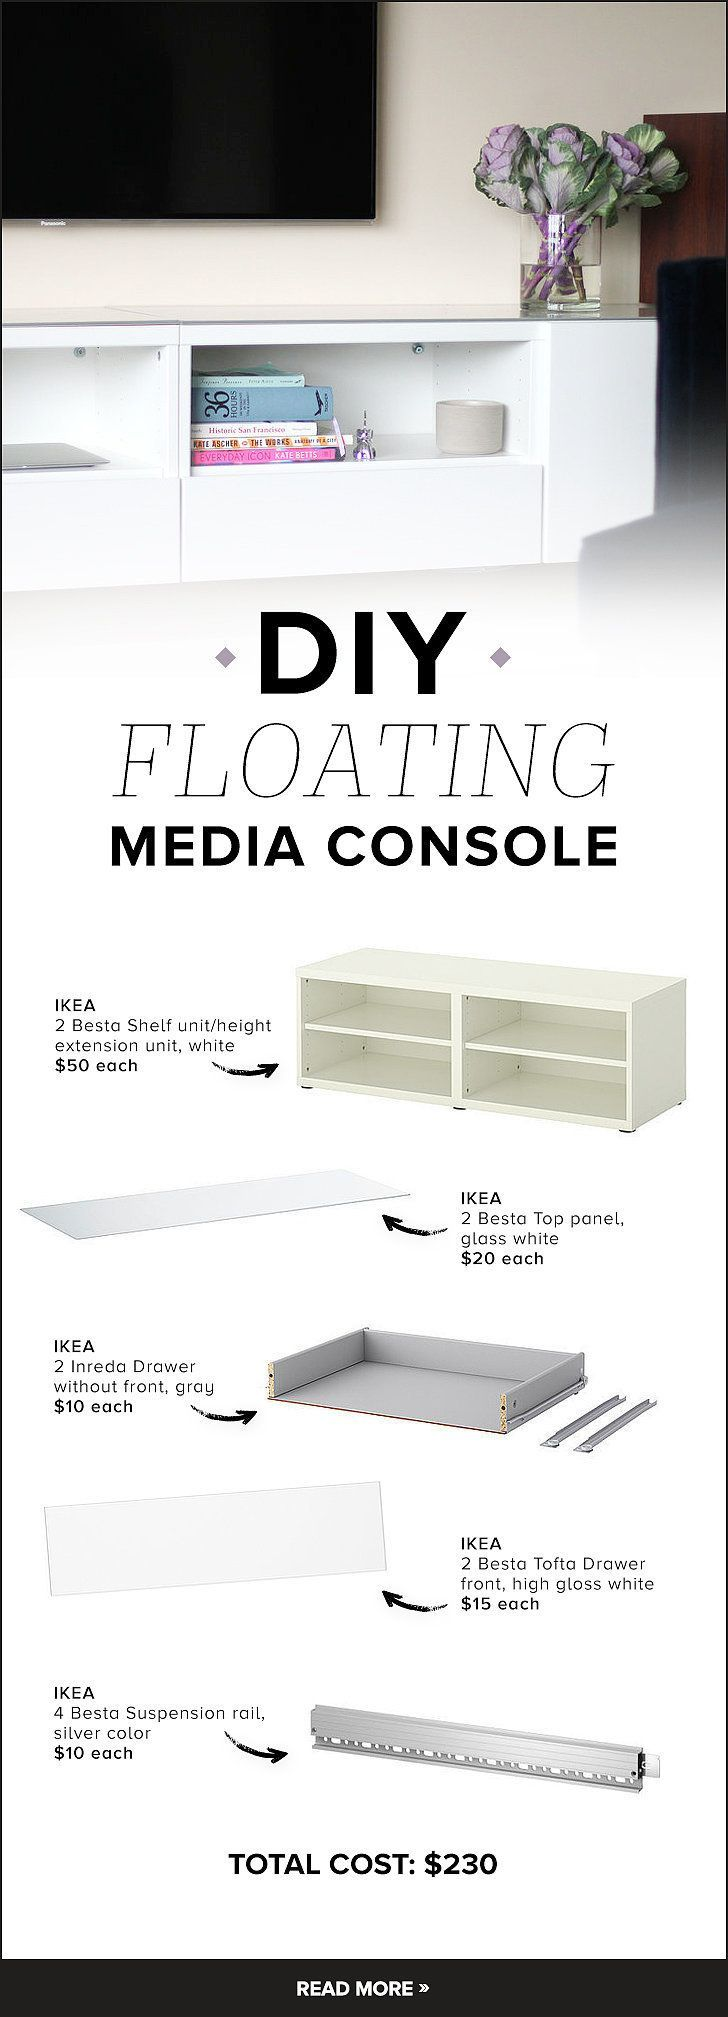 How to Transform an Ikea Cabinet Into a Chic Media Console